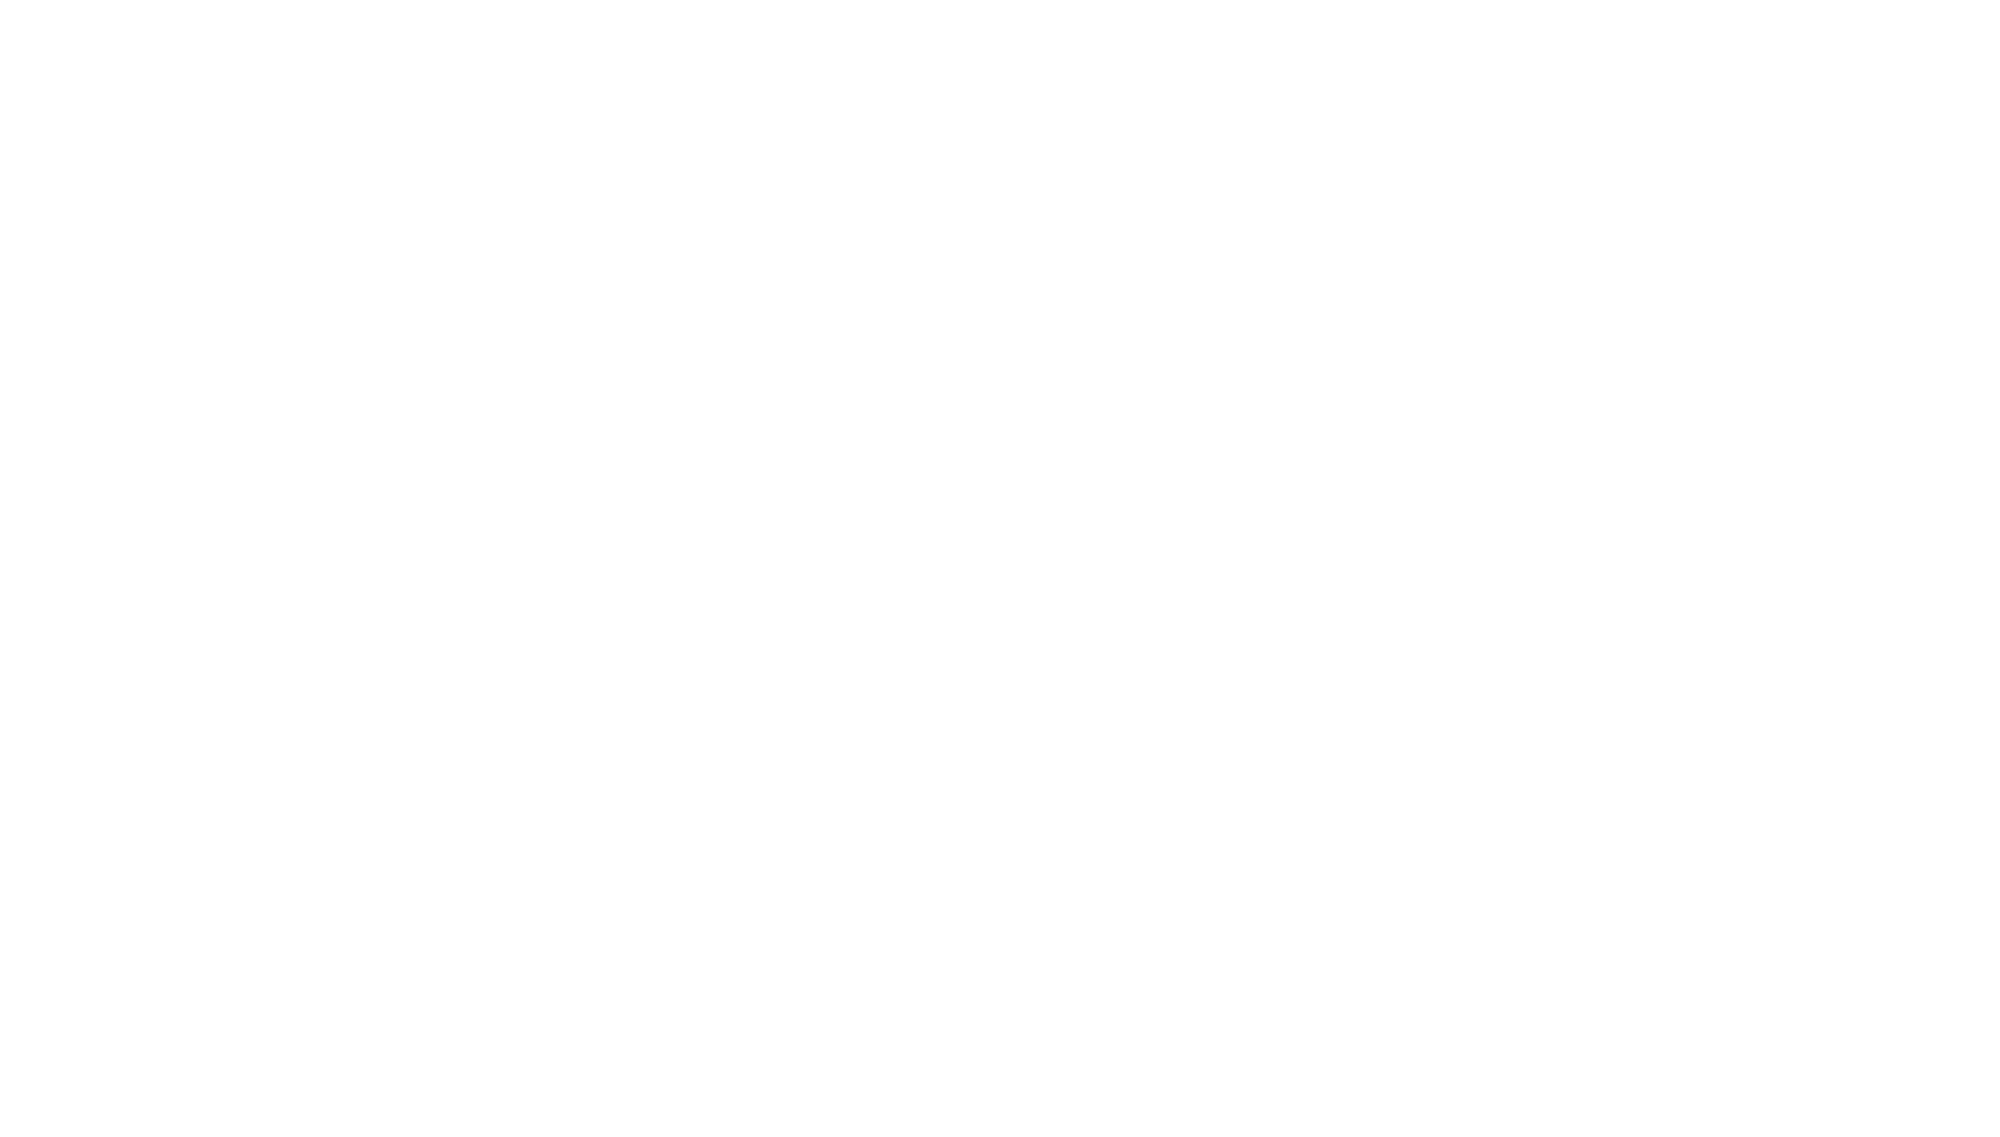 Salvation Magazine-logo-white.png